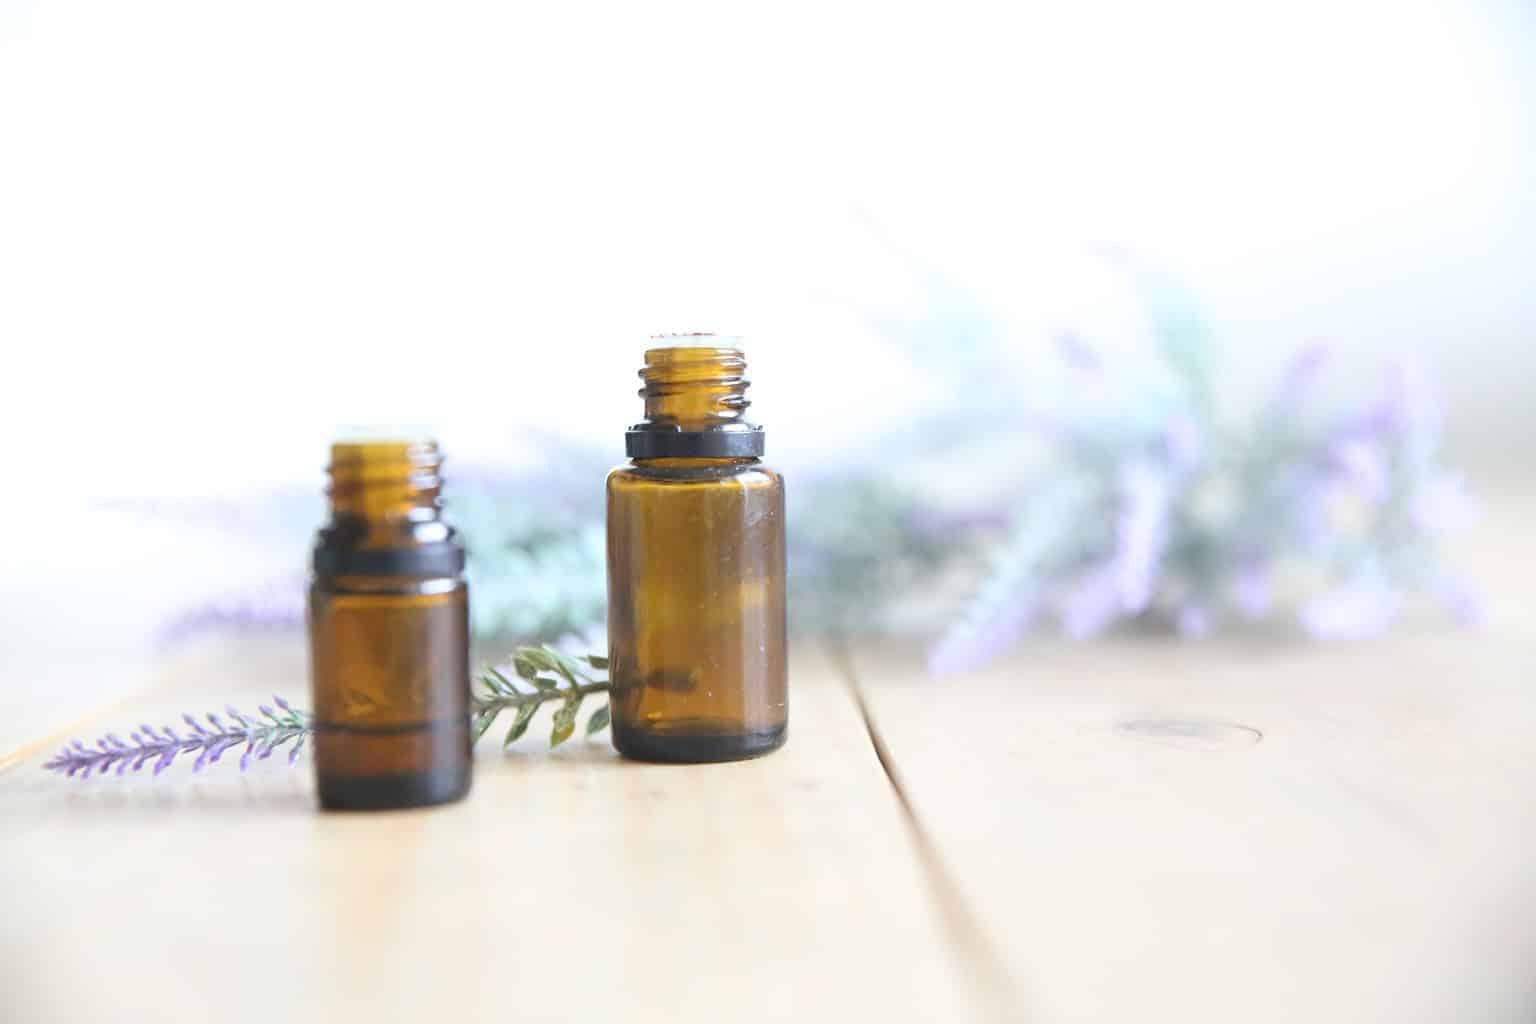 Simple essential oil roller bottle recipes for kids and adults using lavender.